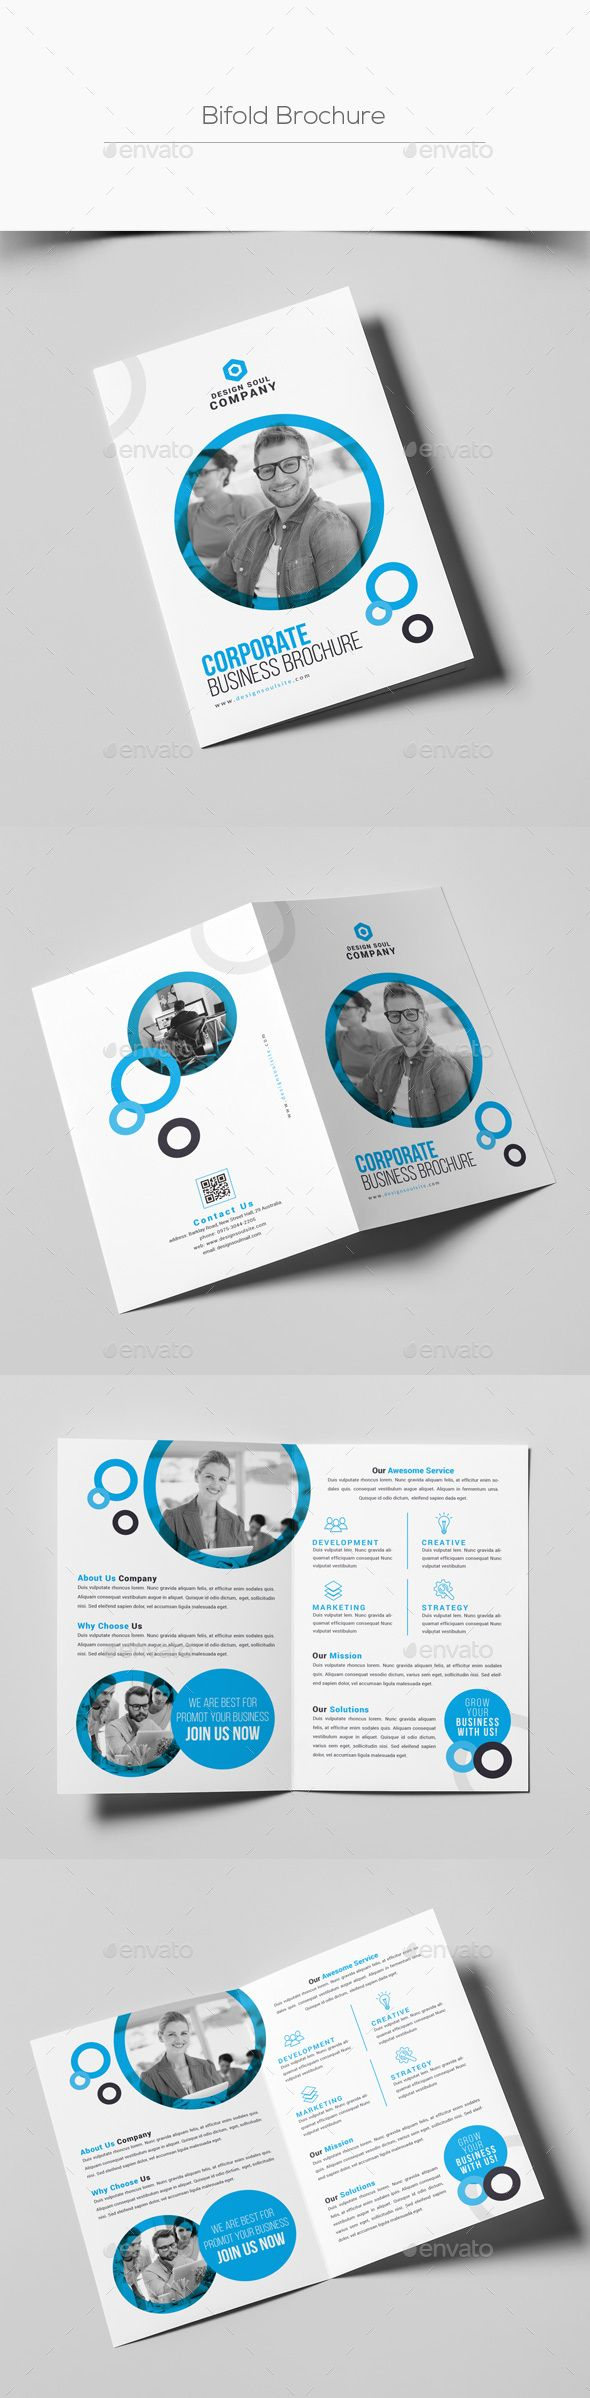 bifold brochure details adobe photoshop cs5 fully layered psd files easy customizable and editable easy to